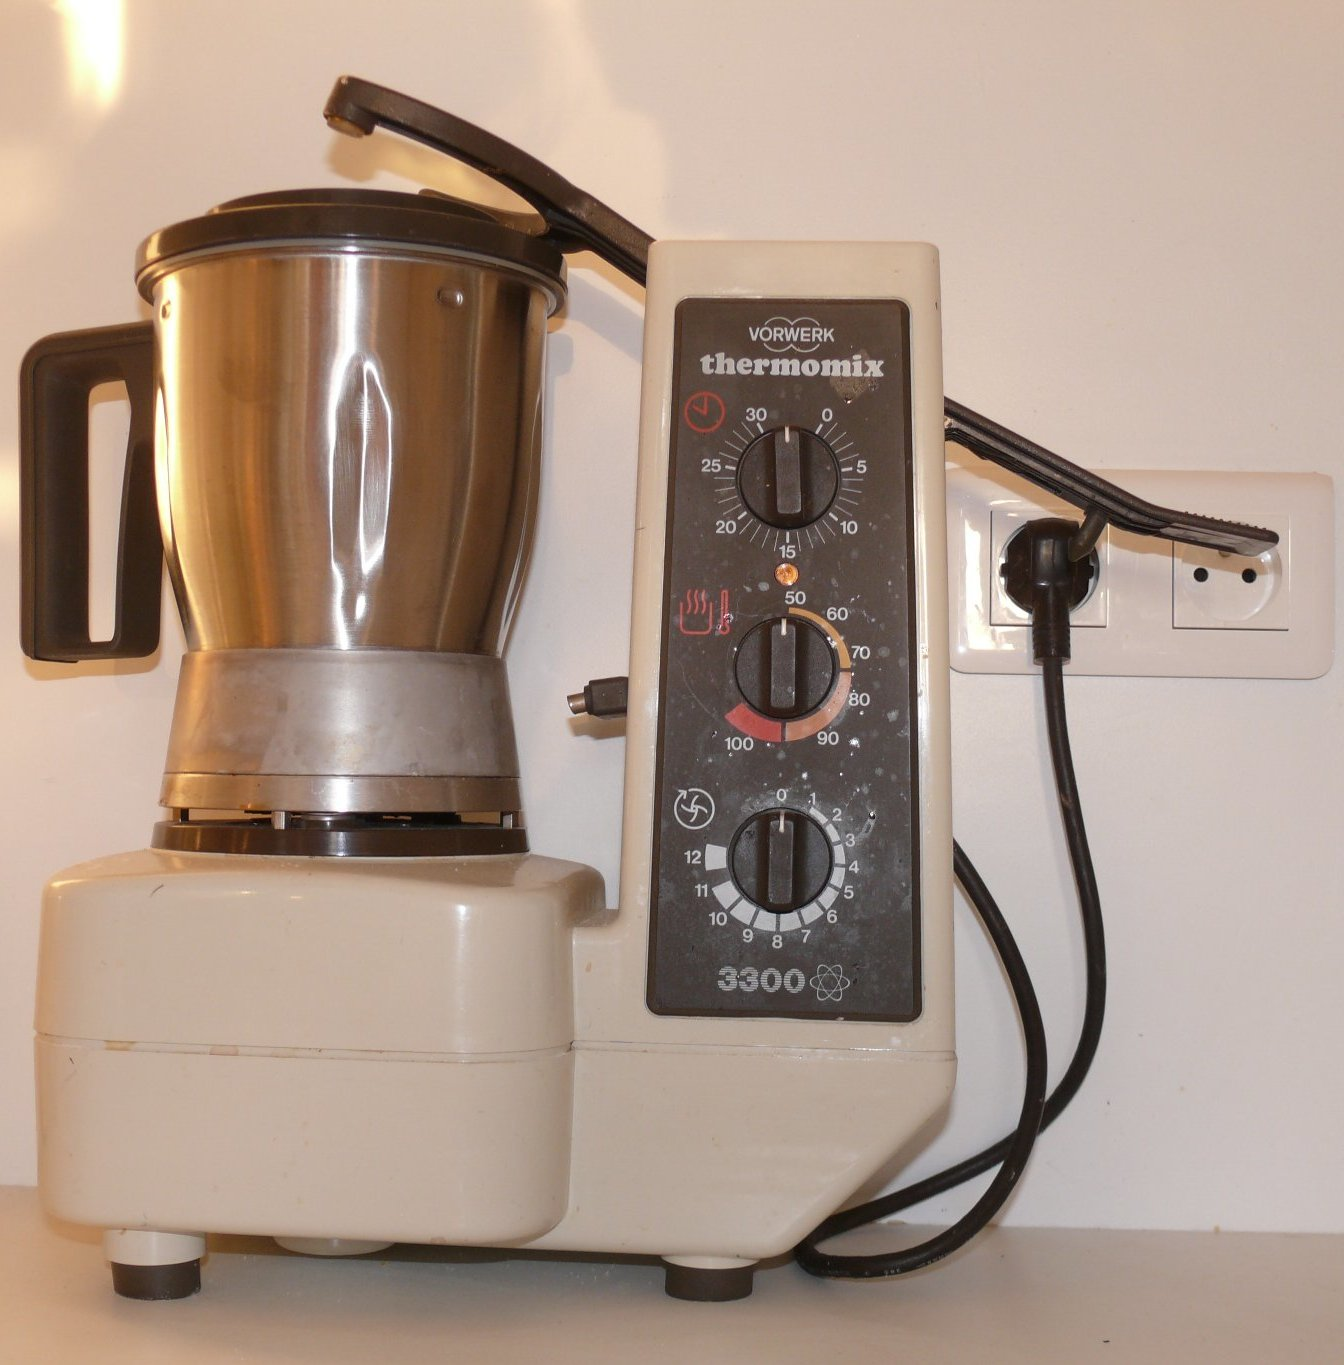 File vorwerk thermomix 3300 wikimedia commons - I companion vs thermomix ...